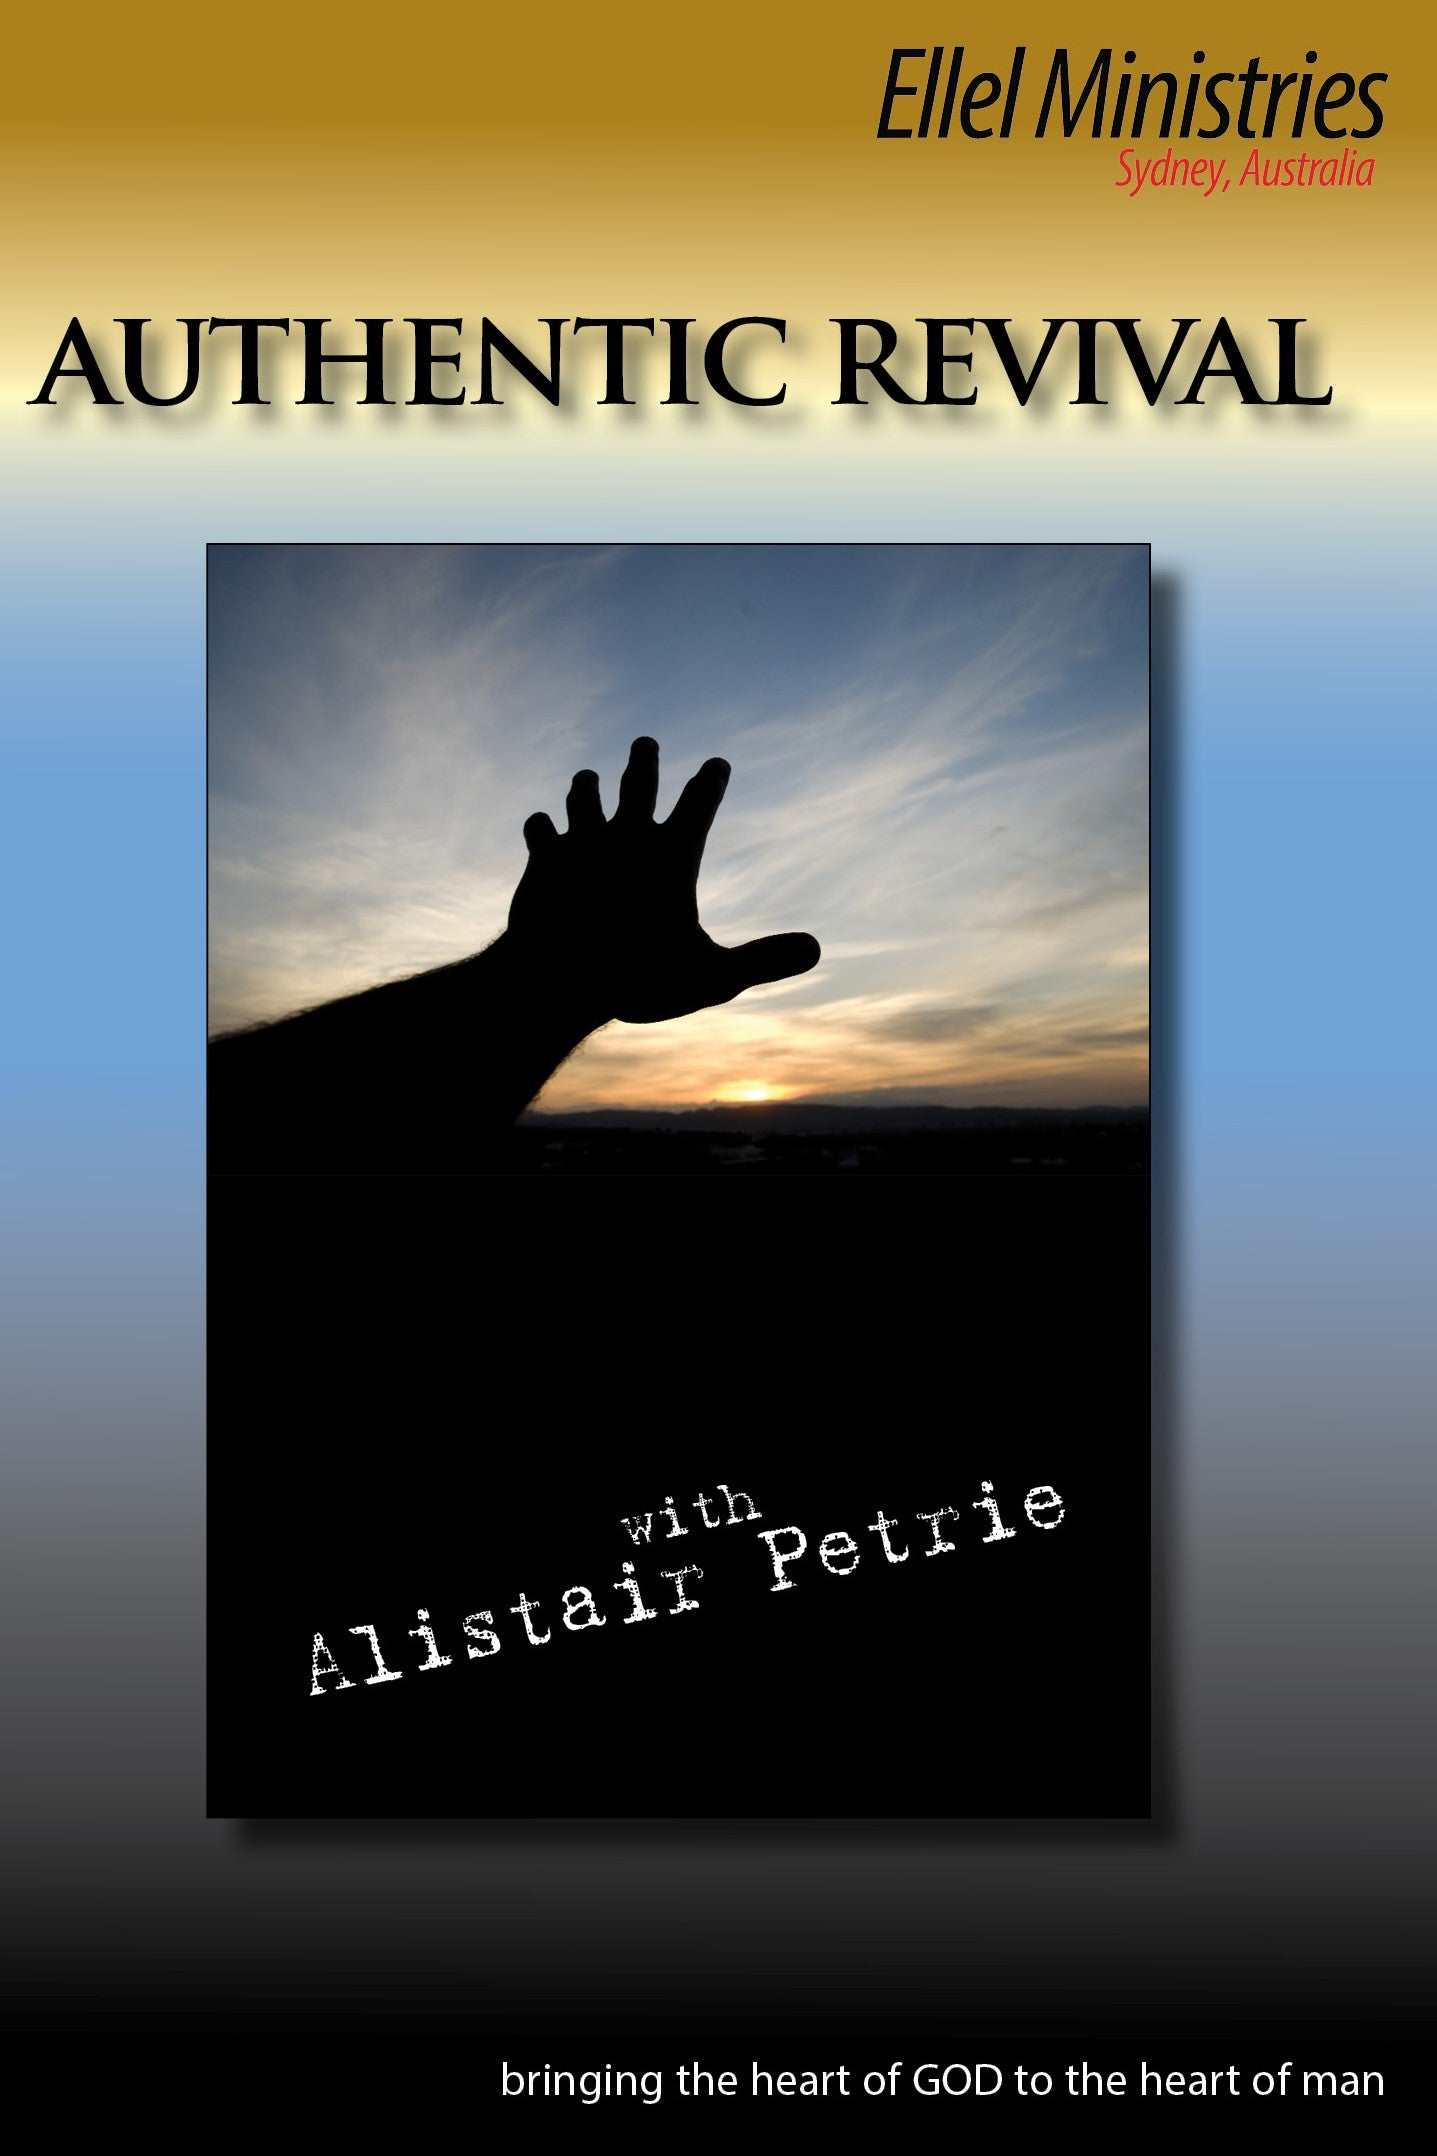 Authentic Revival (CD/USB)